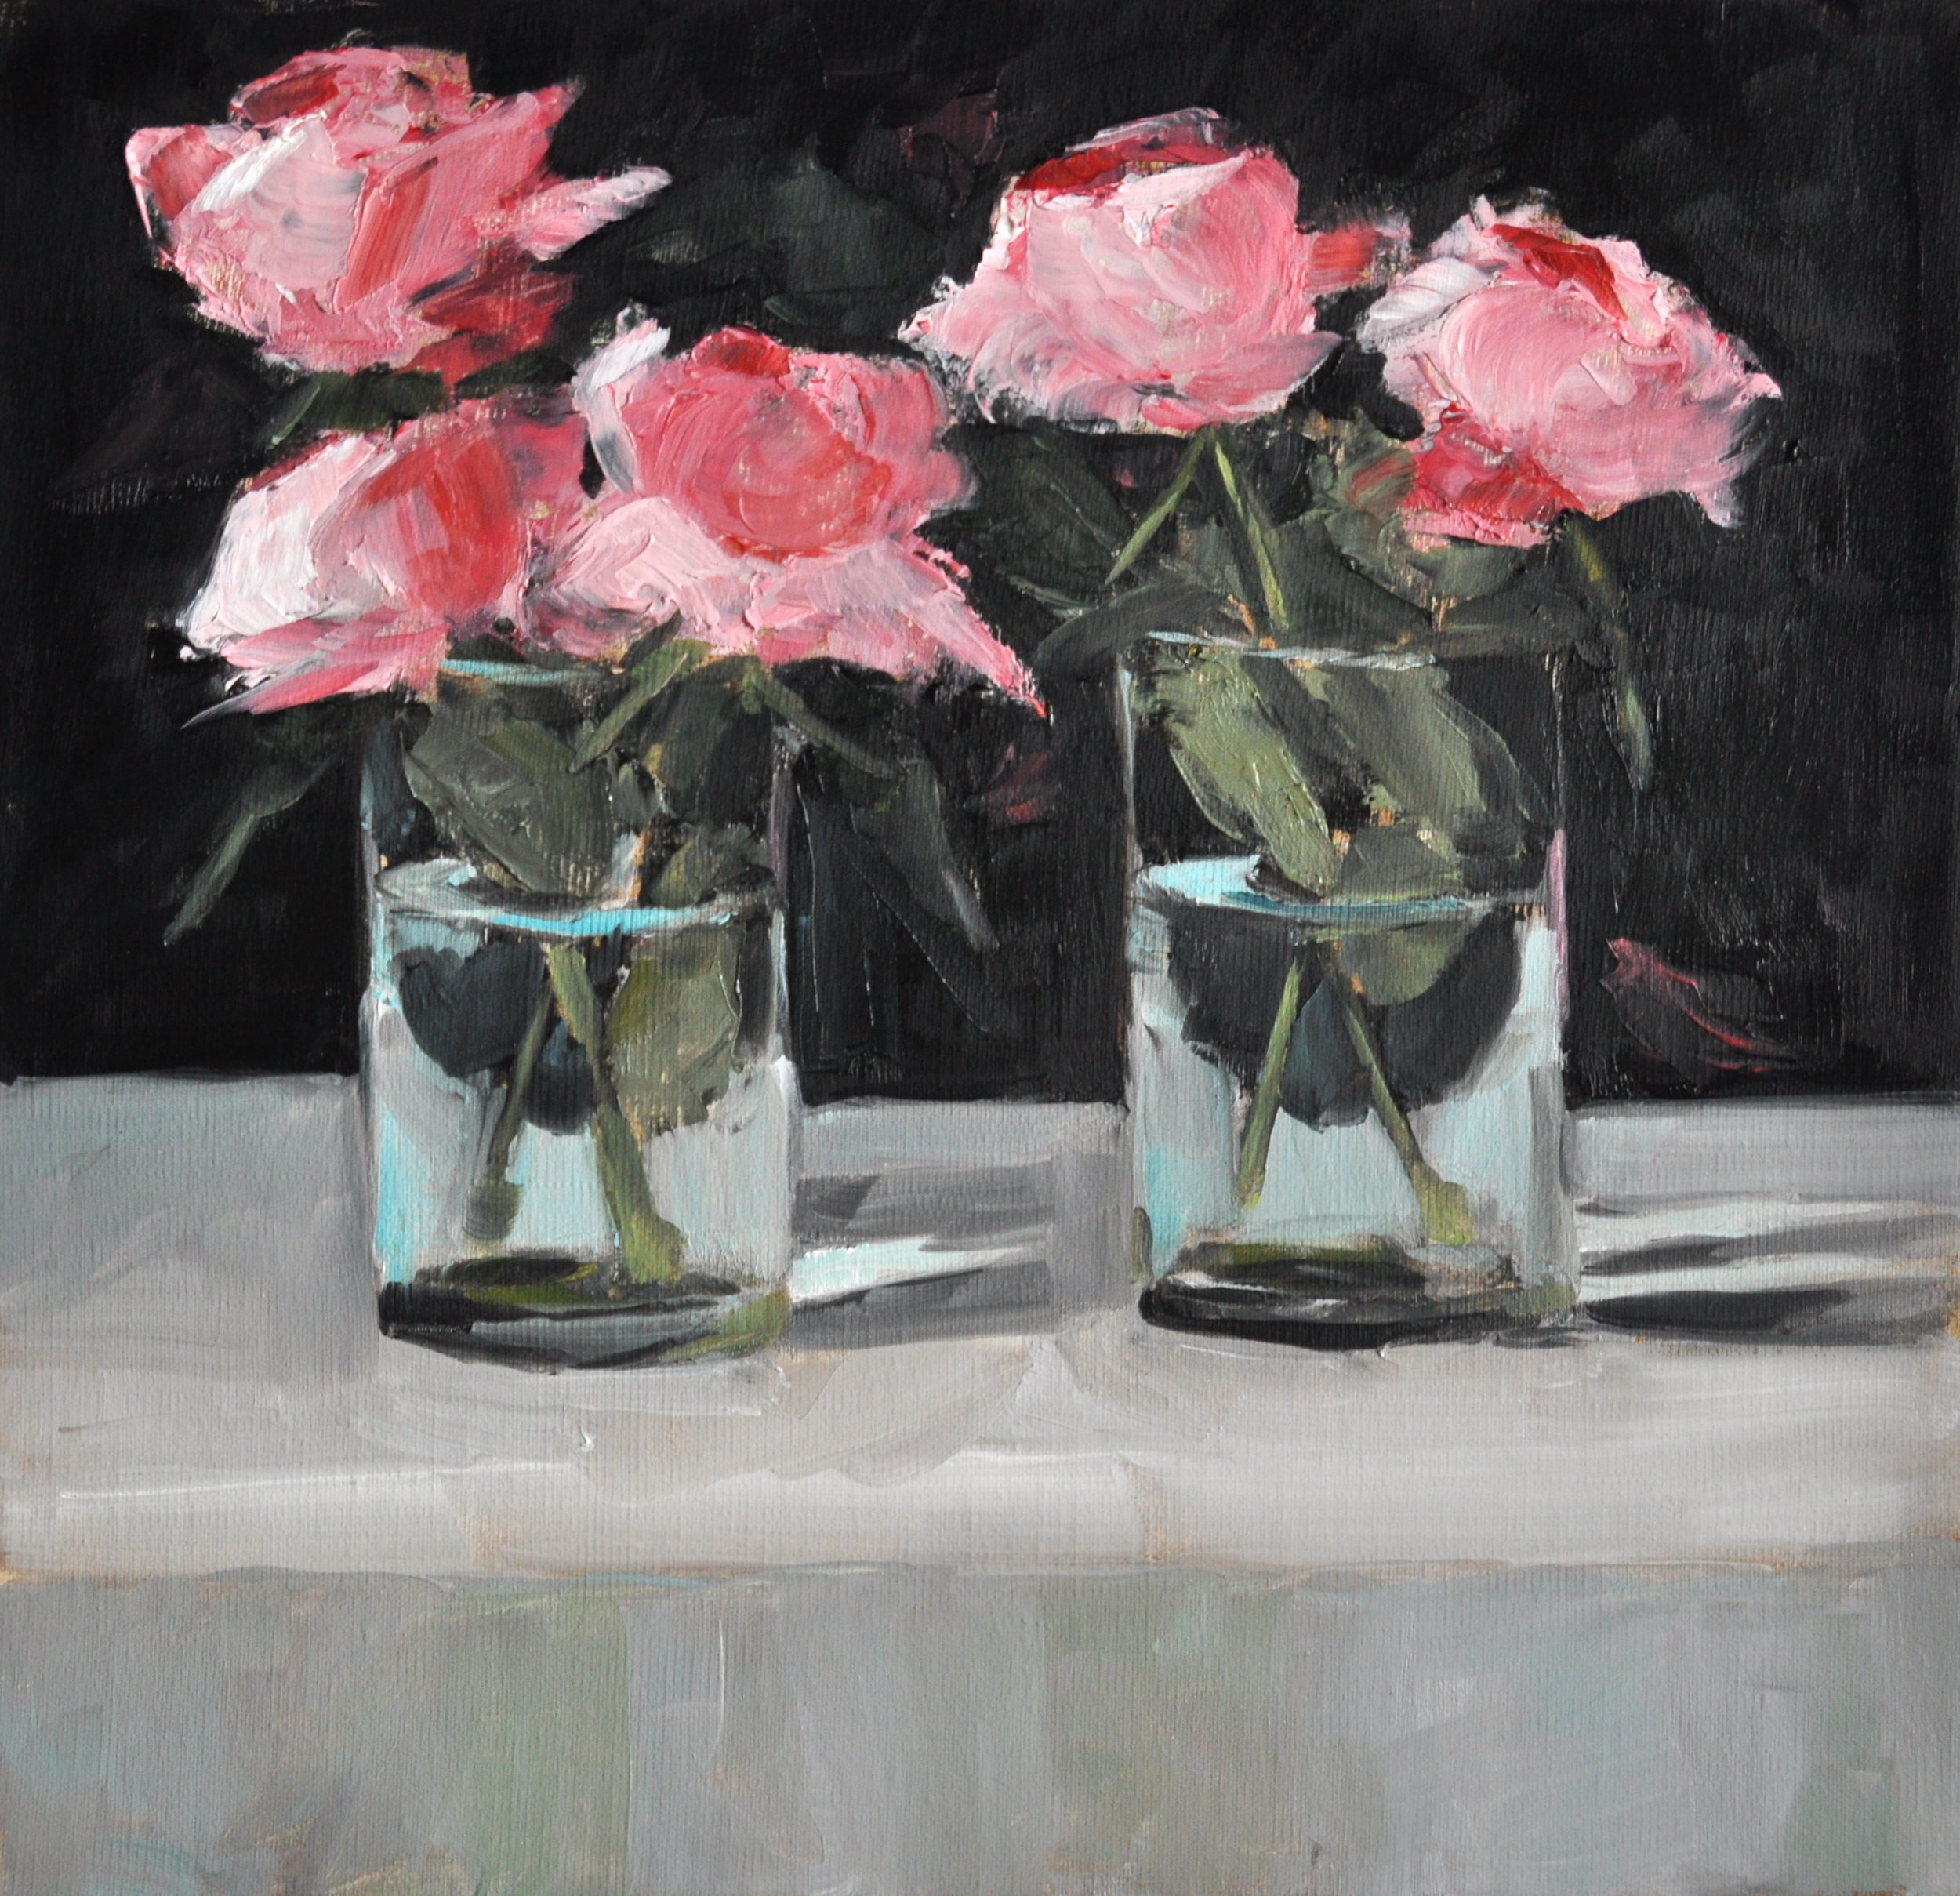 Five Pinks, Oil on Linen, 12 x 12, available